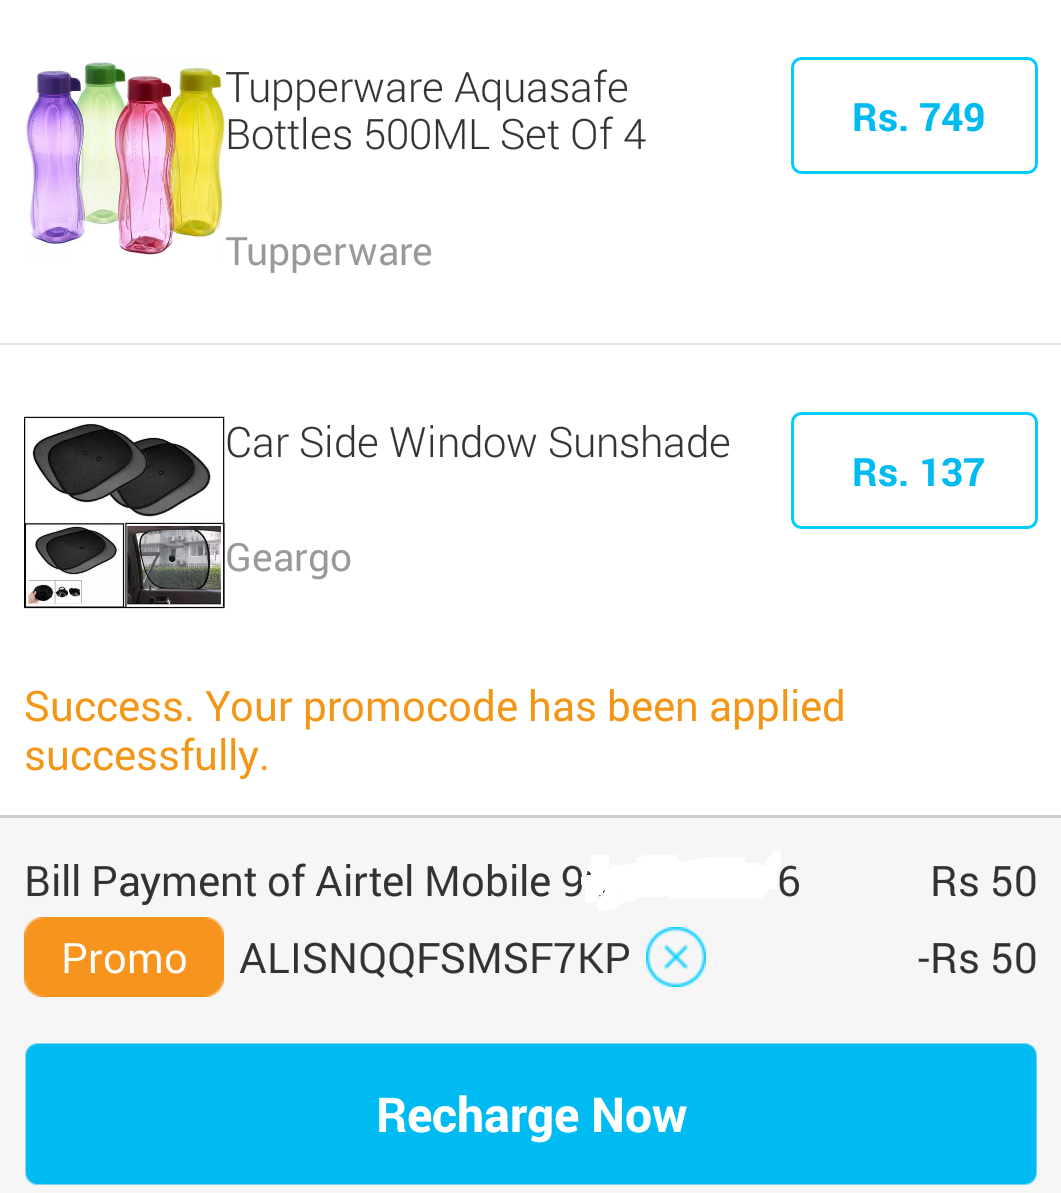 Paytm coupons for recharge of 50